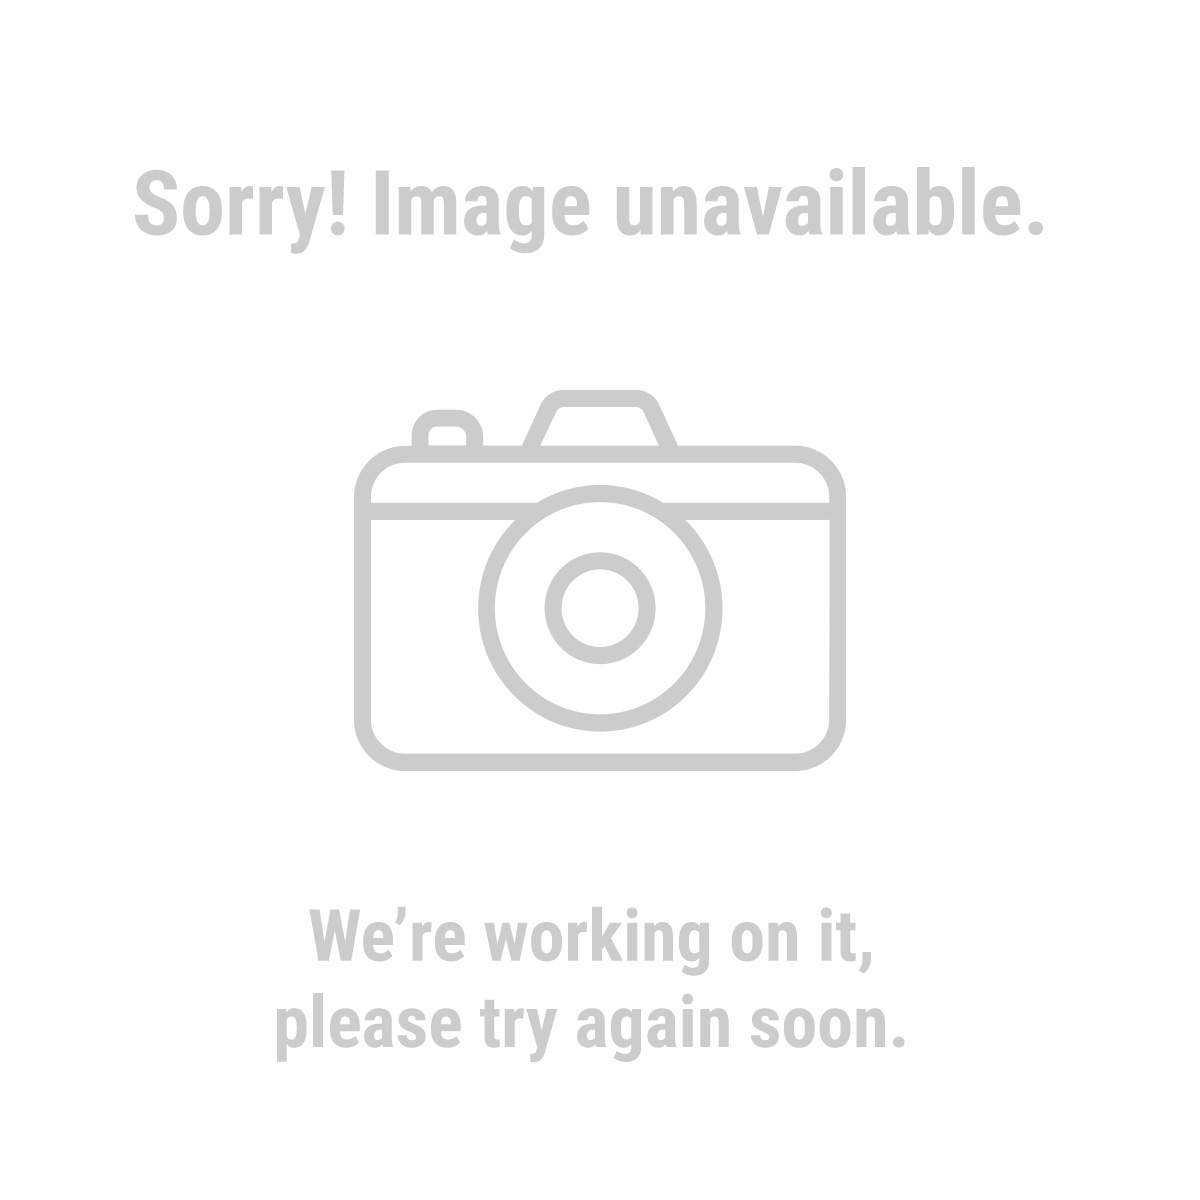 "Warrior® 39677 4-1/2"" Grinding Wheel for Metal"